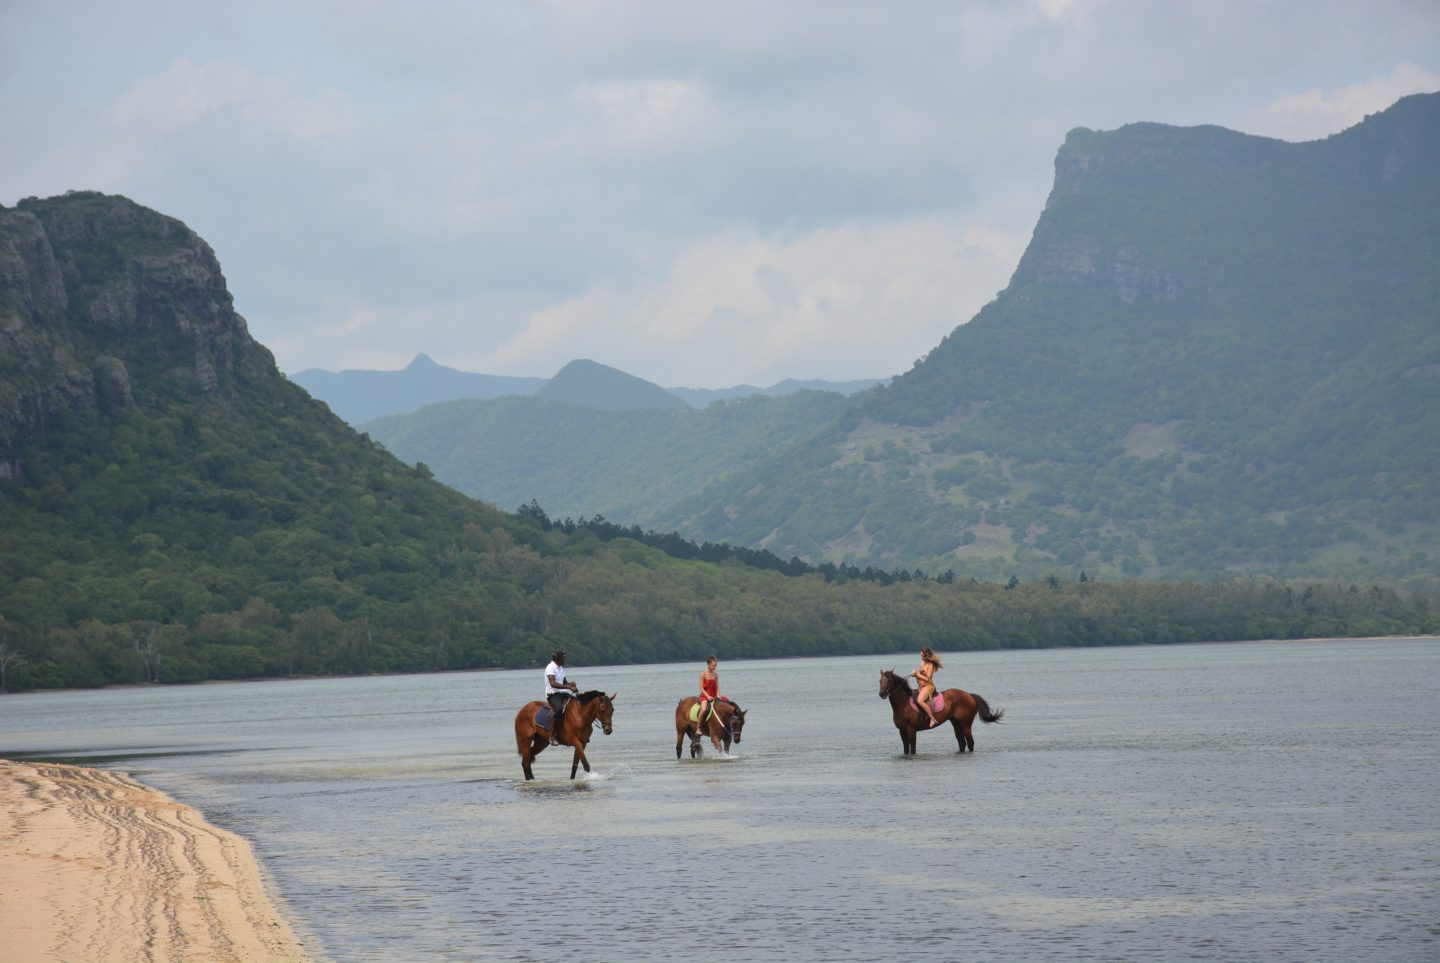 Clutch and carry on - Mauritius travel blog - horse riding on the beach Mauritius